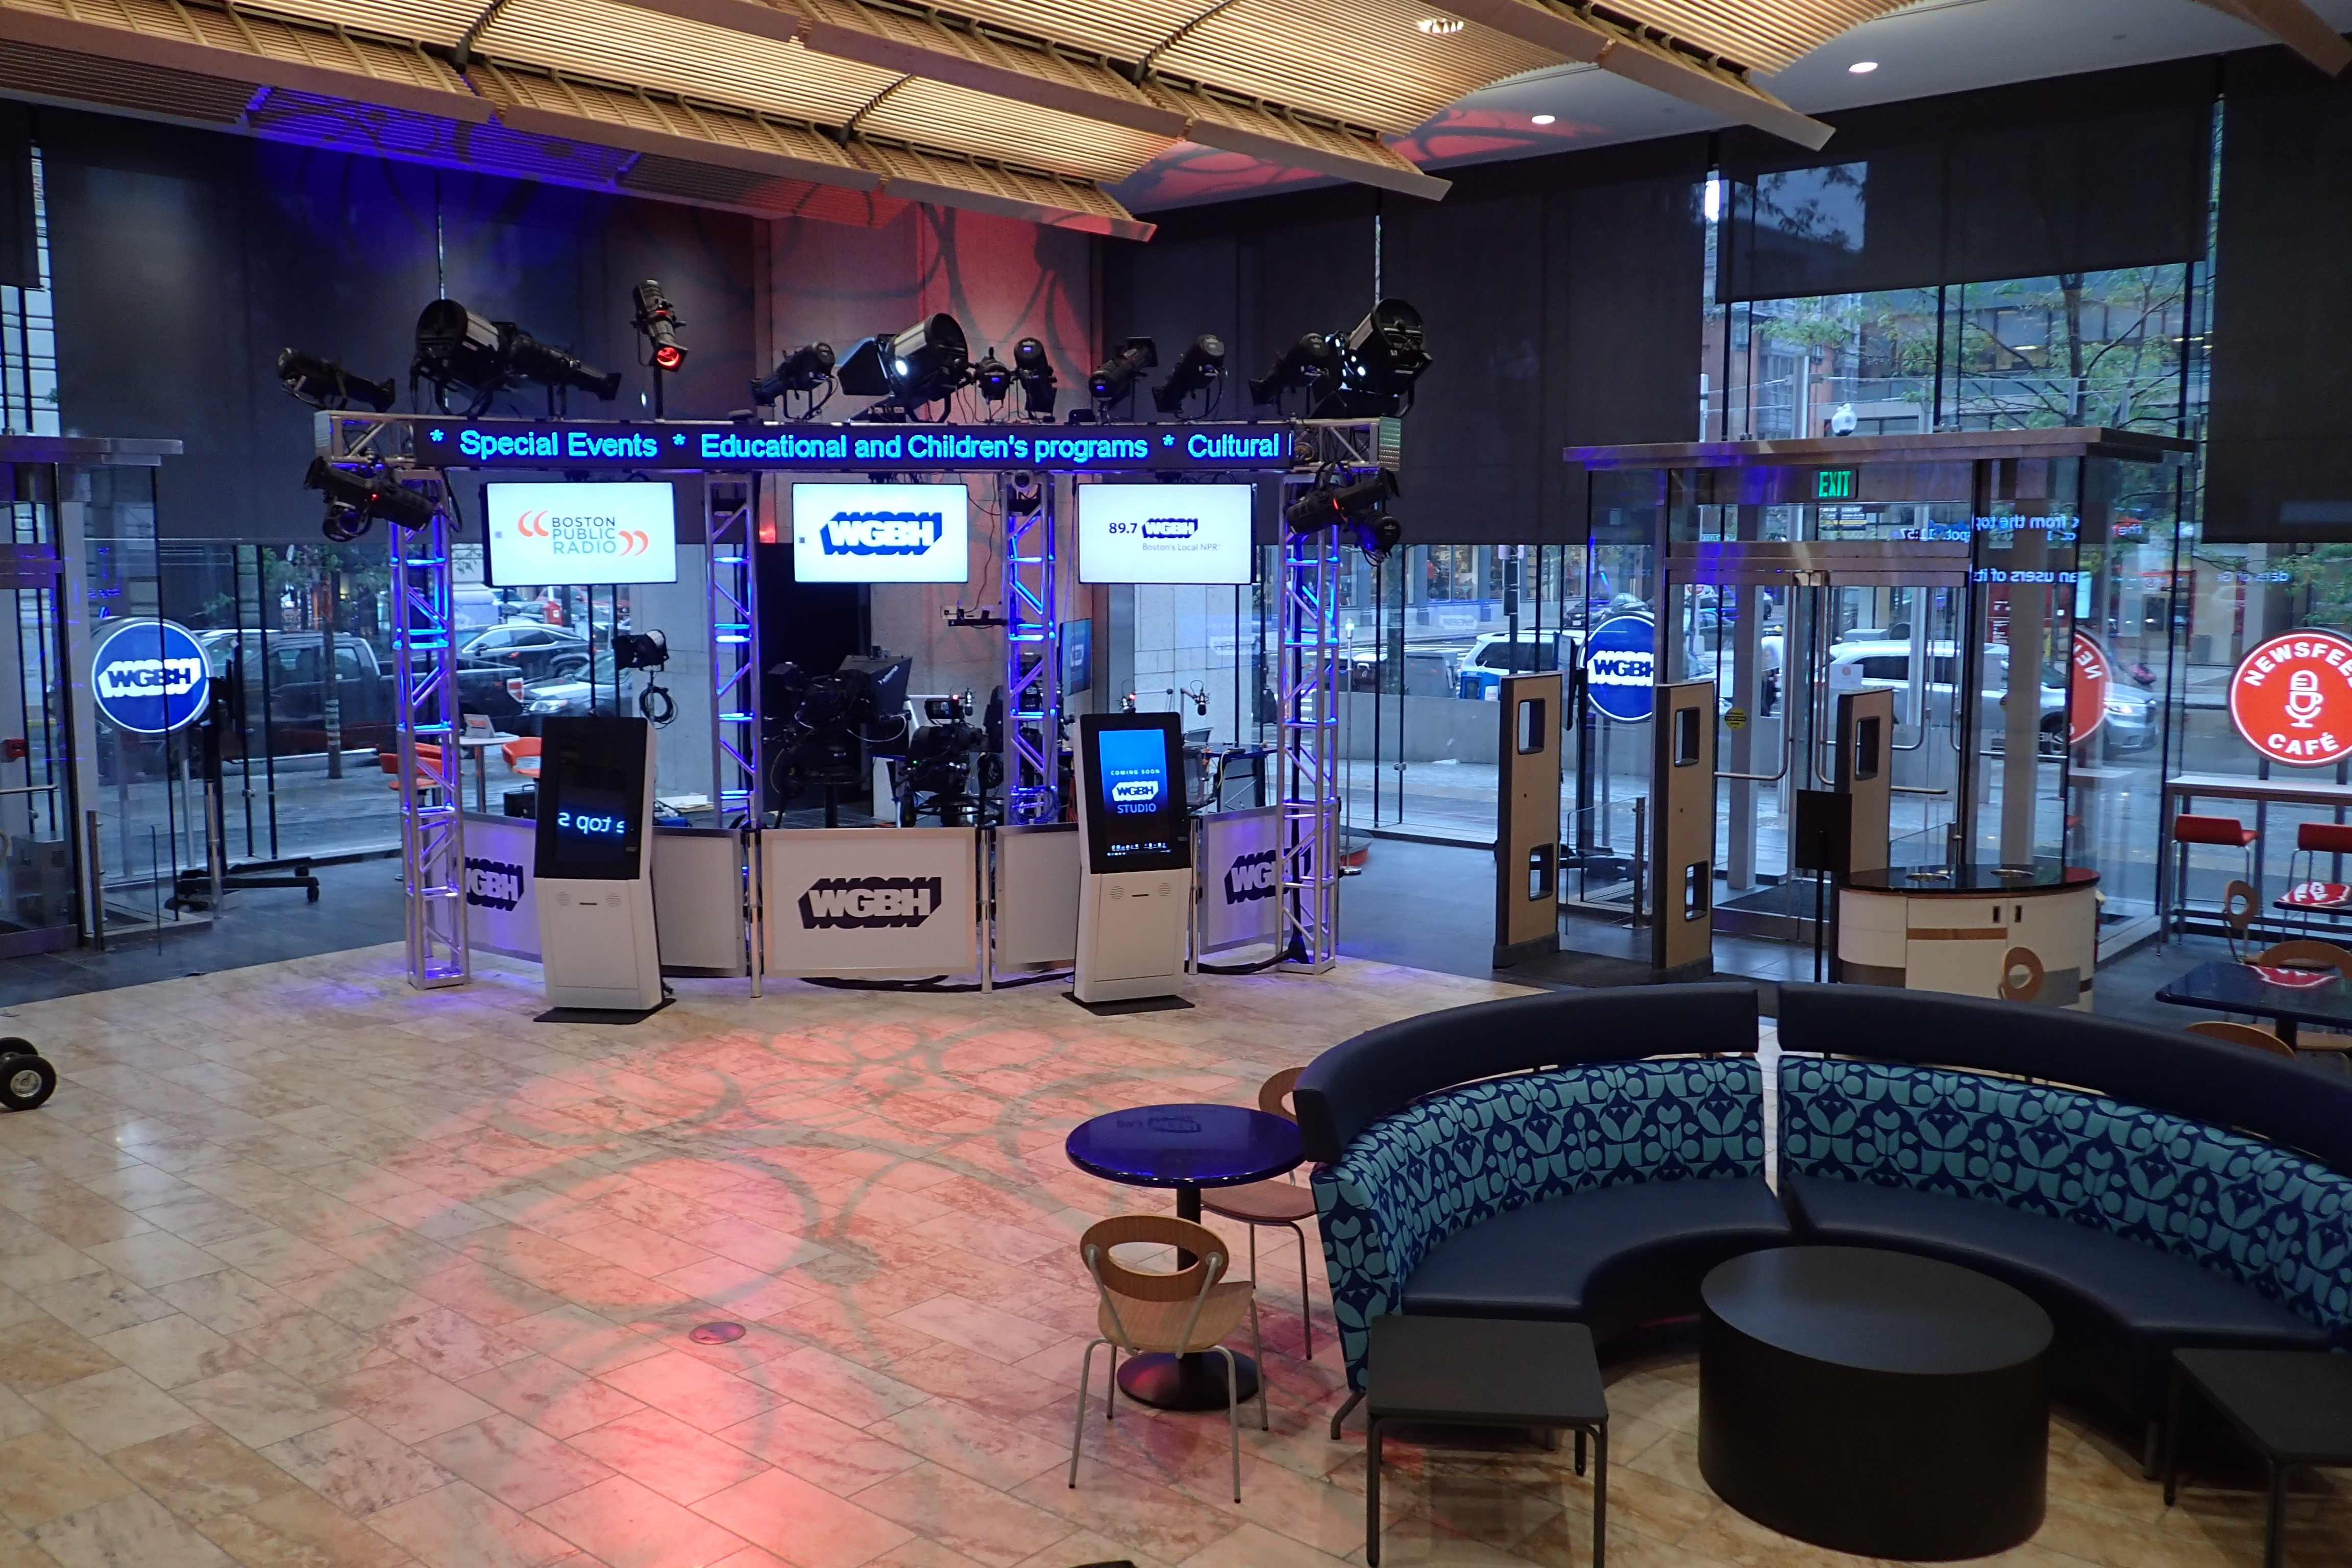 WGBH studio at Boston Public Library